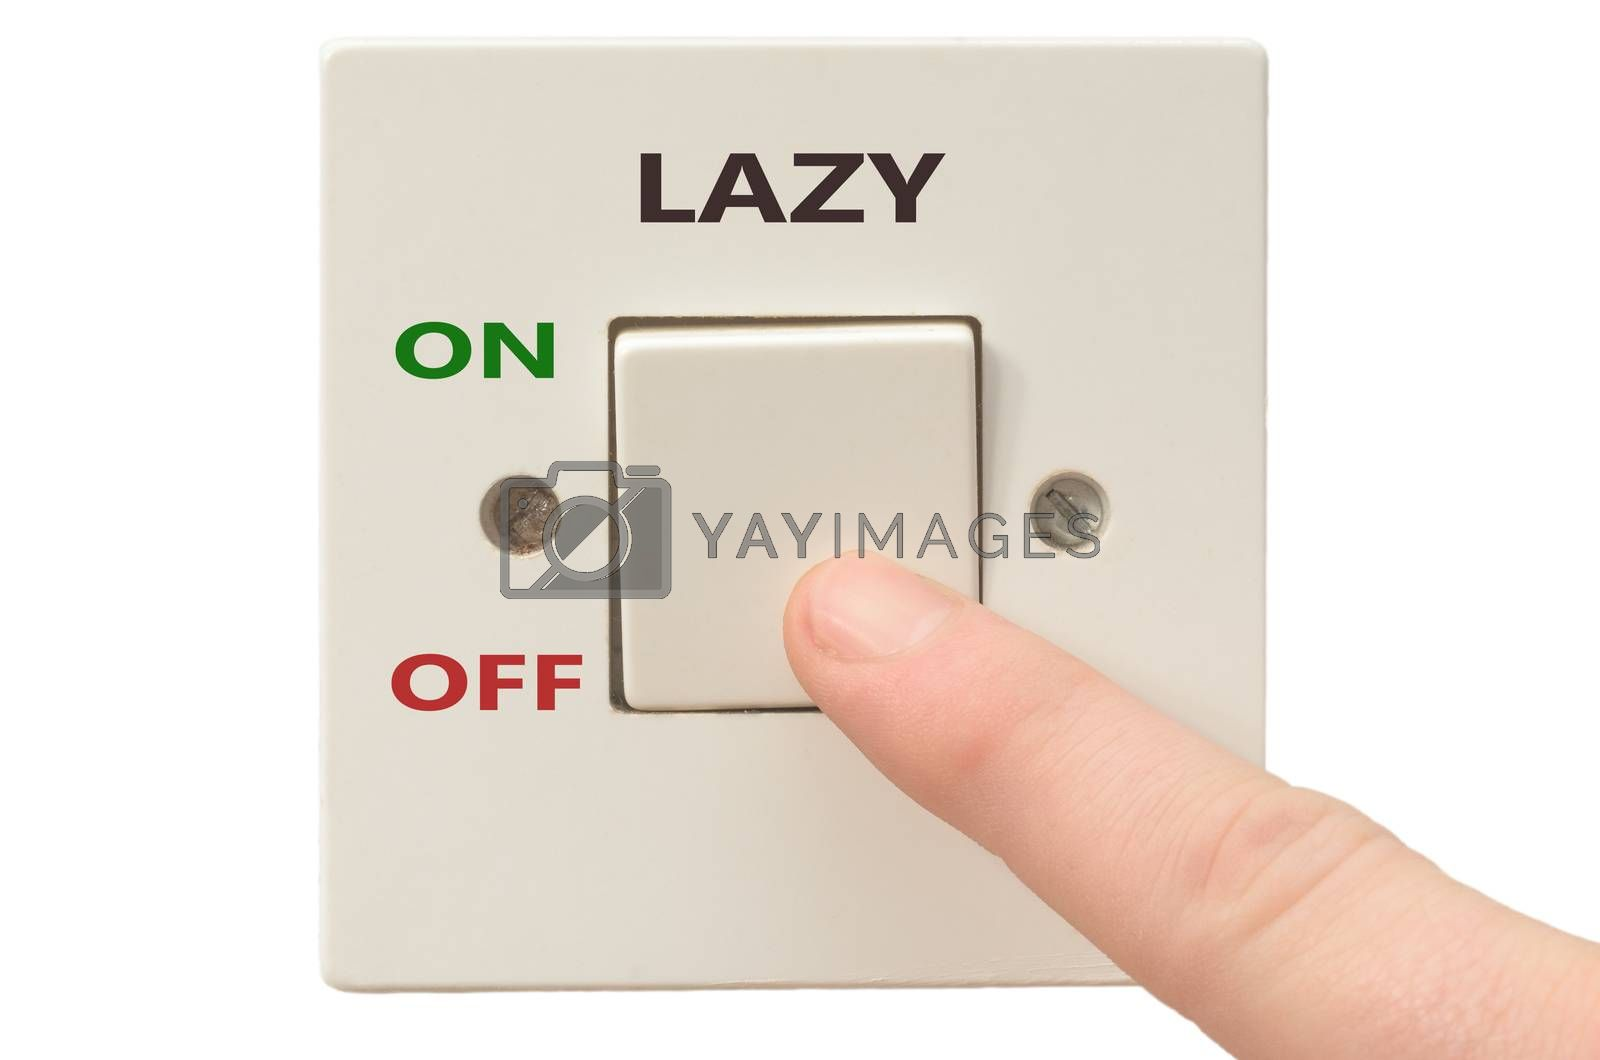 Turning off Lazy with finger on electrical switch